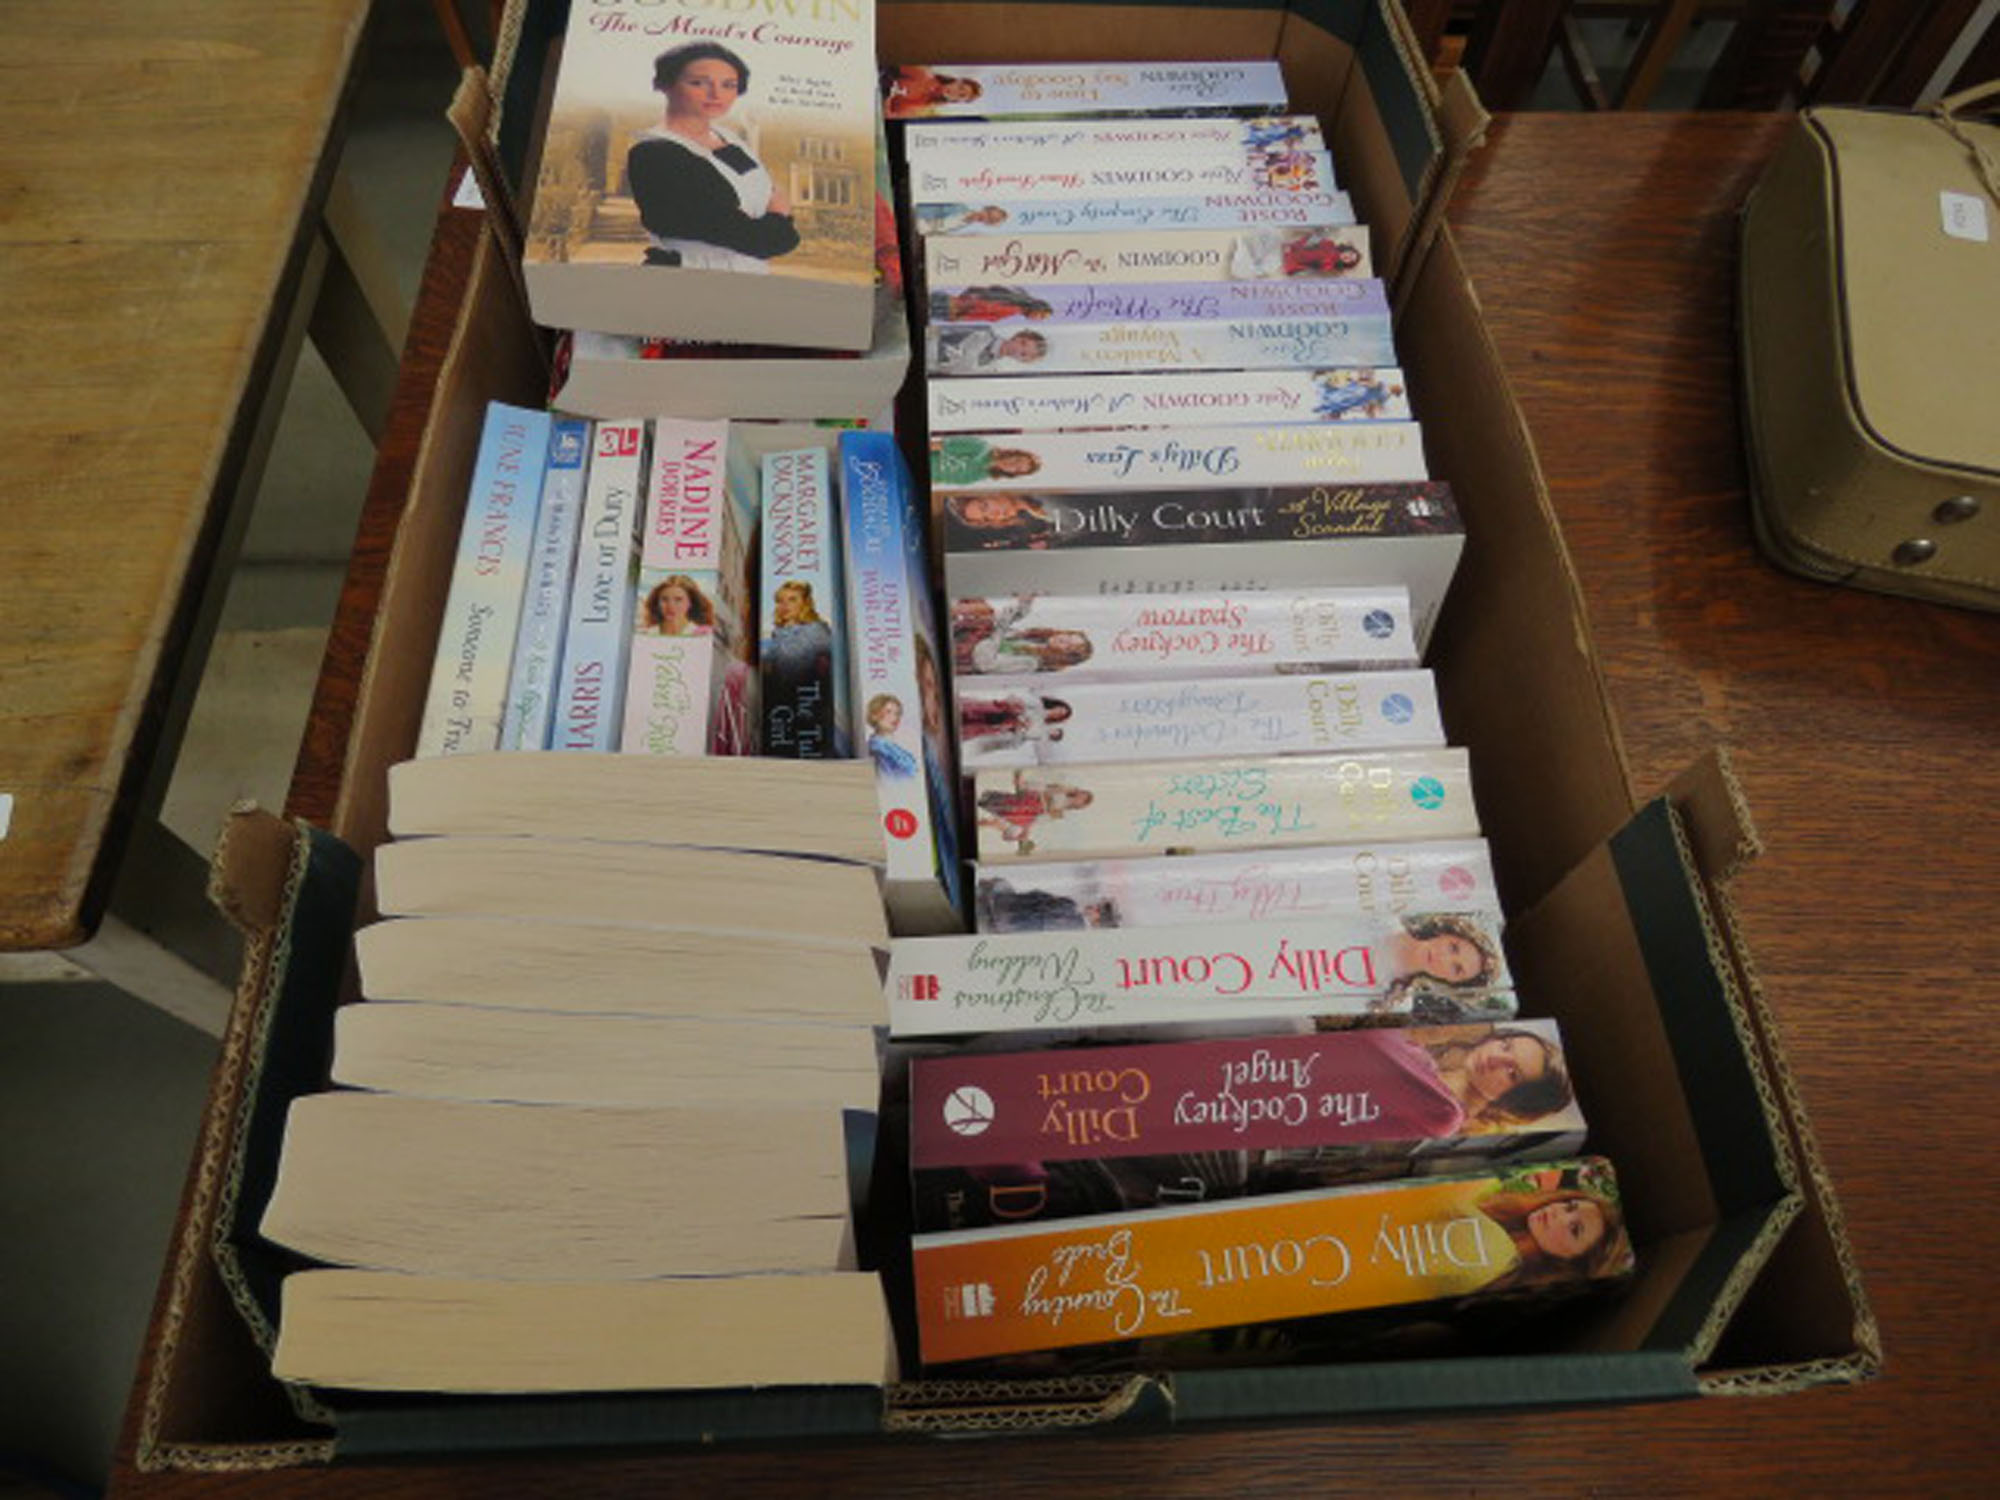 Box containing Rosie Goodwin, Dilly Court and other romantic novels